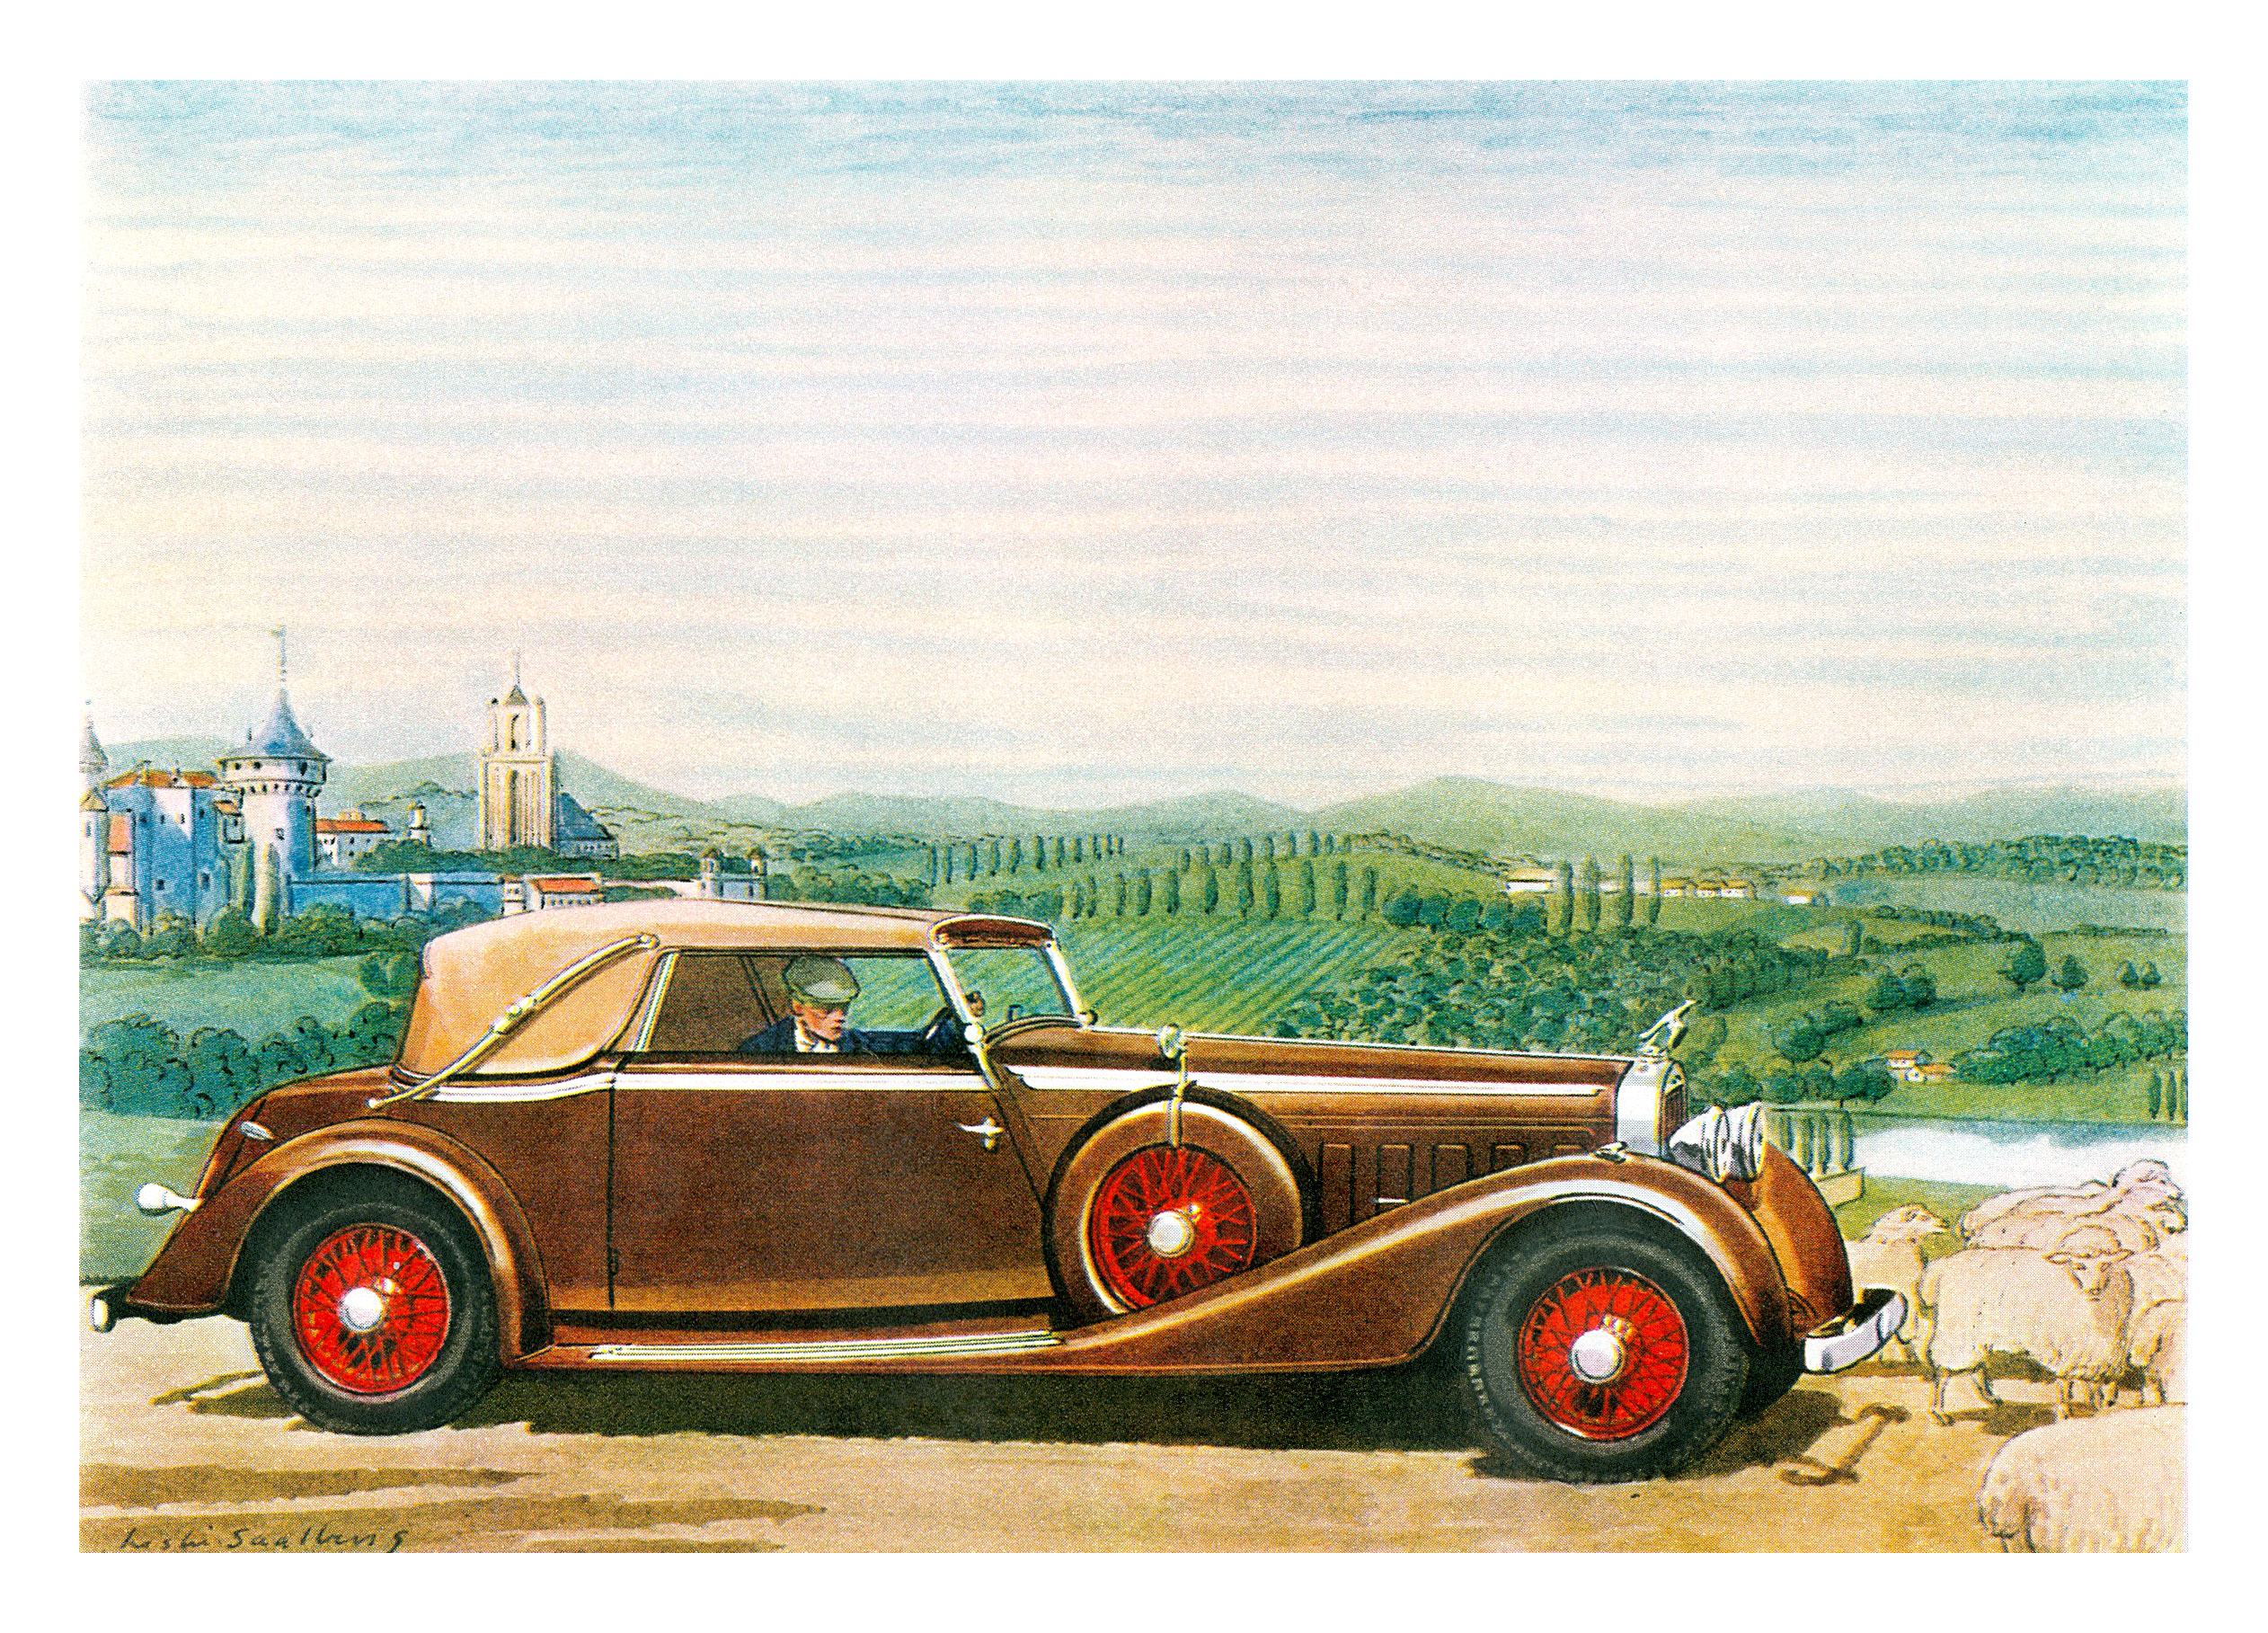 1935 Hispano-Suiza Convertible Coupe - Illustrated by Leslie Saalburg